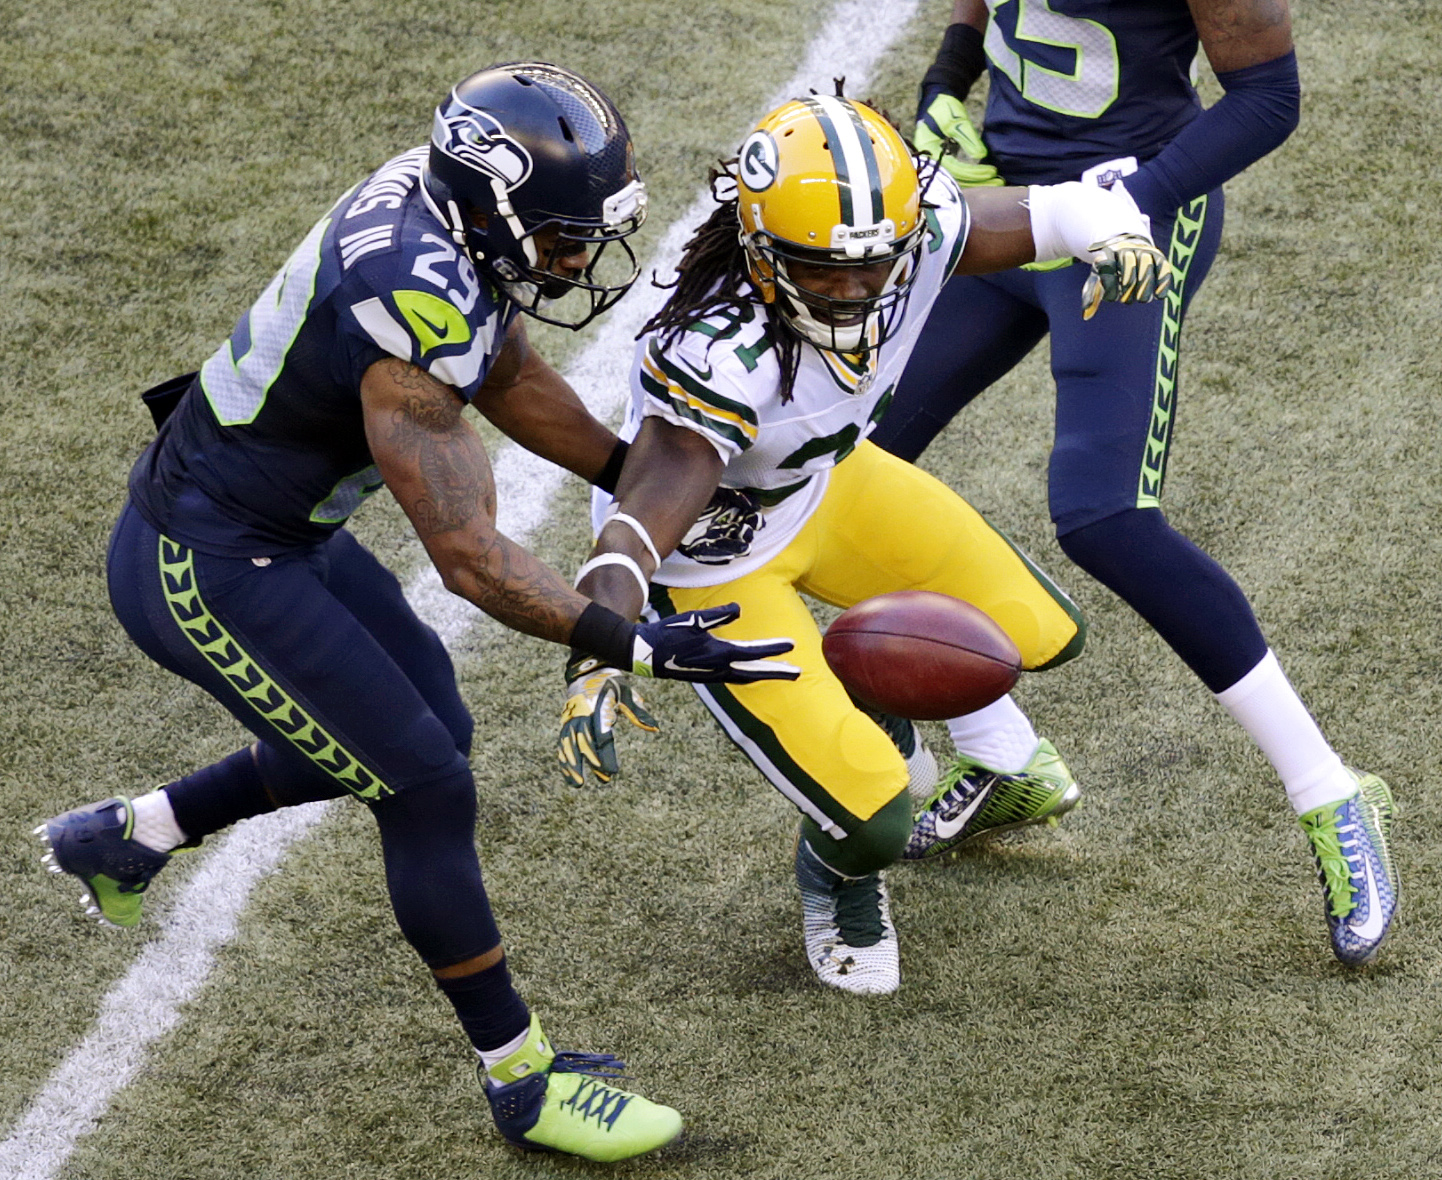 Seattle Seahawks' Earl Thomas, left, muffs the catch on a punt as Green Bay Packers' Davon House reaches for the ball in the first half of an NFL football game, Thursday, Sept. 4, 2014, in Seattle. The Seahawks got possession